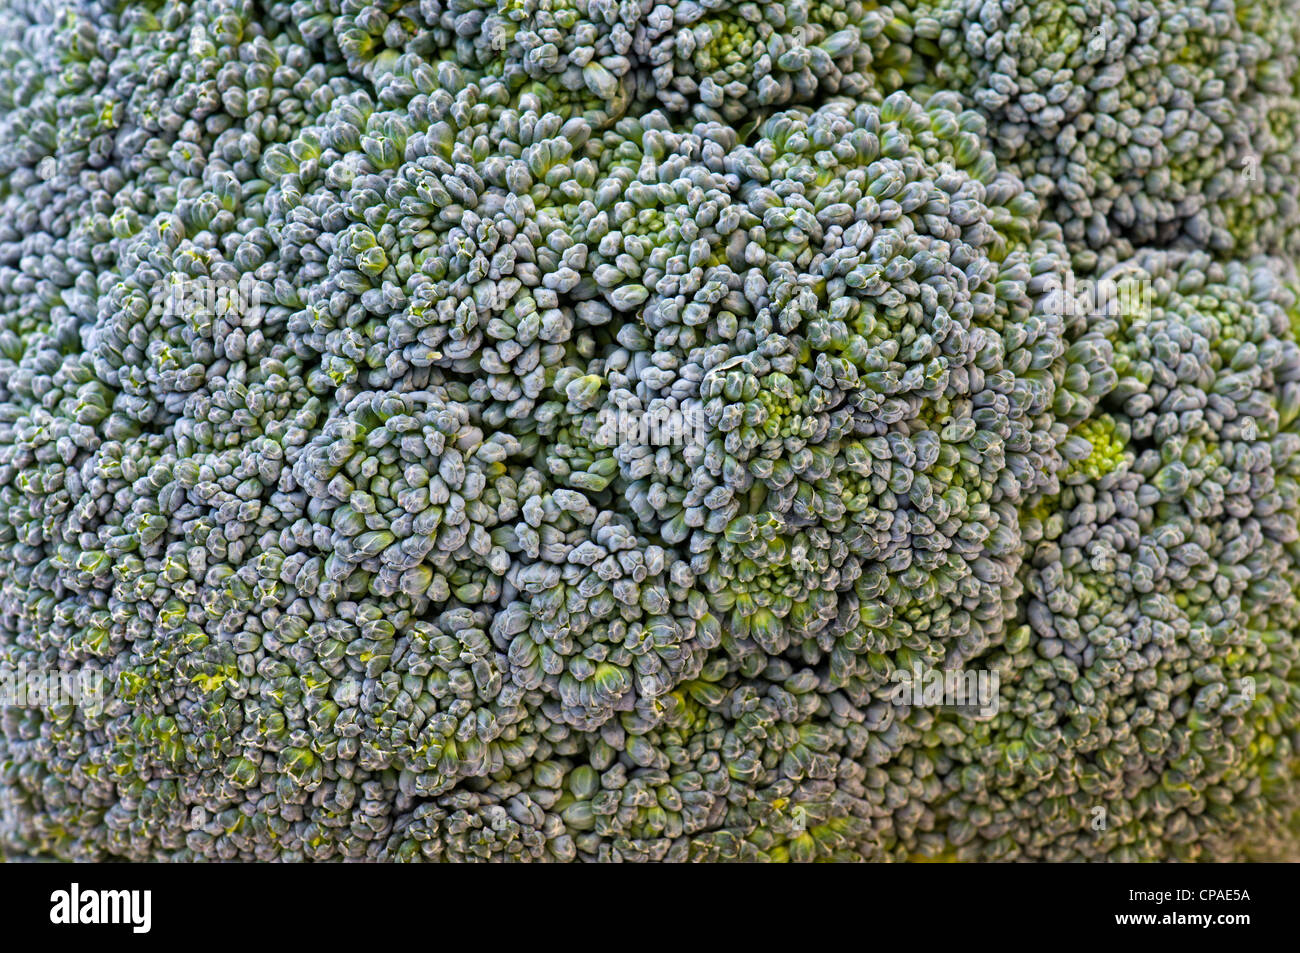 Close up of fresh uncooked broccoli on chopping board Stock Photo